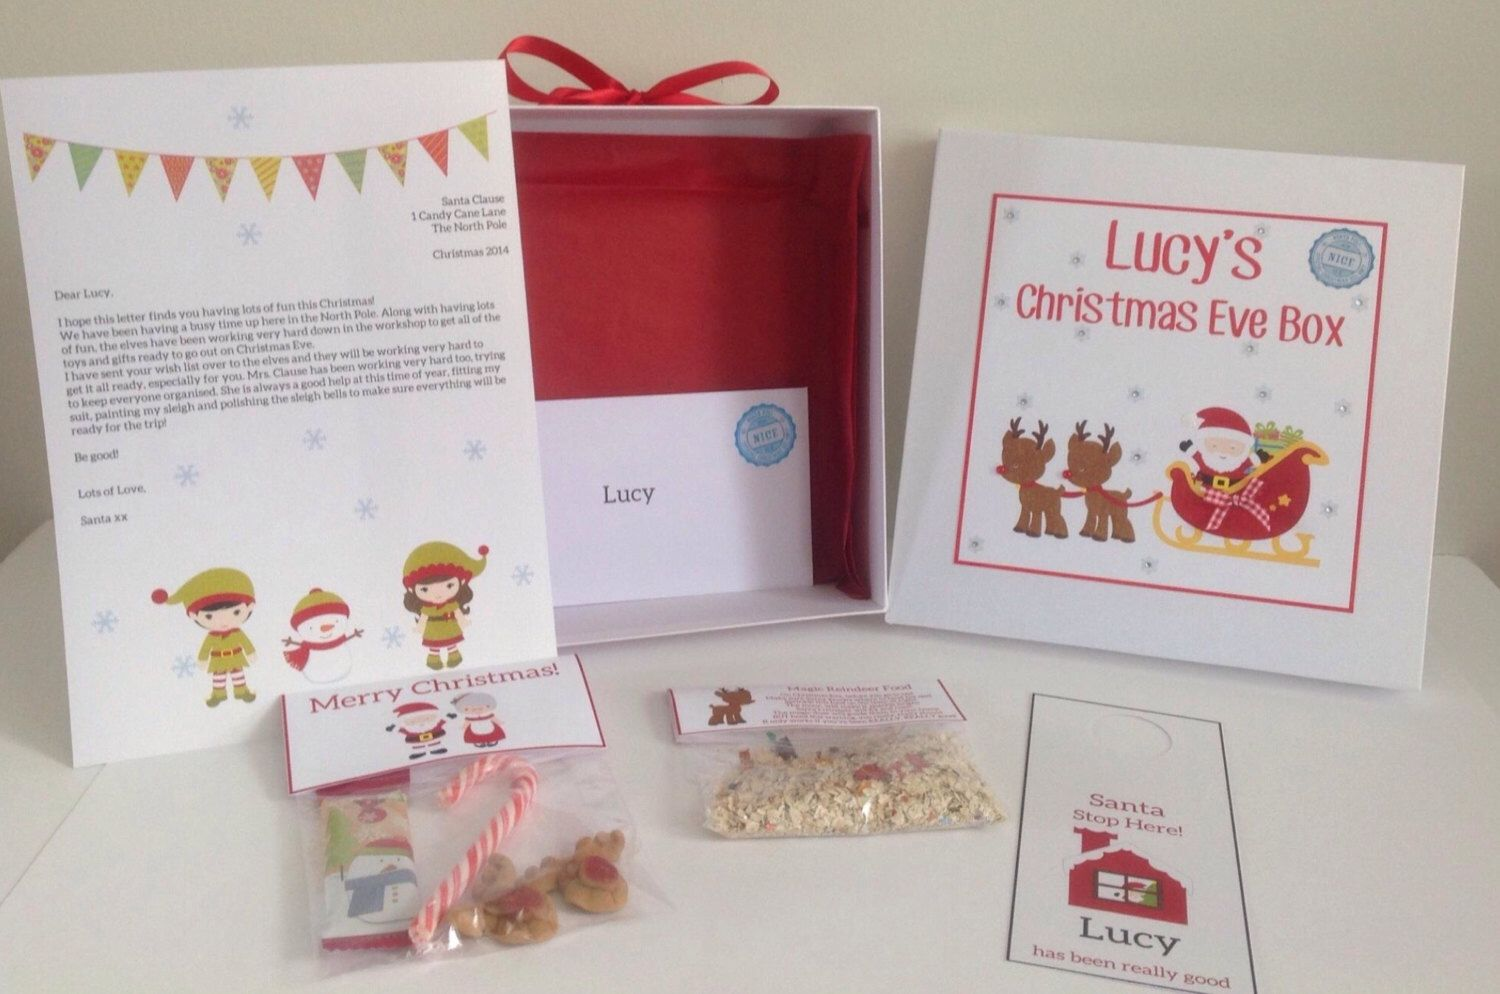 Personalised christmas eve box filled with door hanger sweets personalised christmas eve box filled with door hanger sweets reindeer food and letter from spiritdancerdesigns Image collections